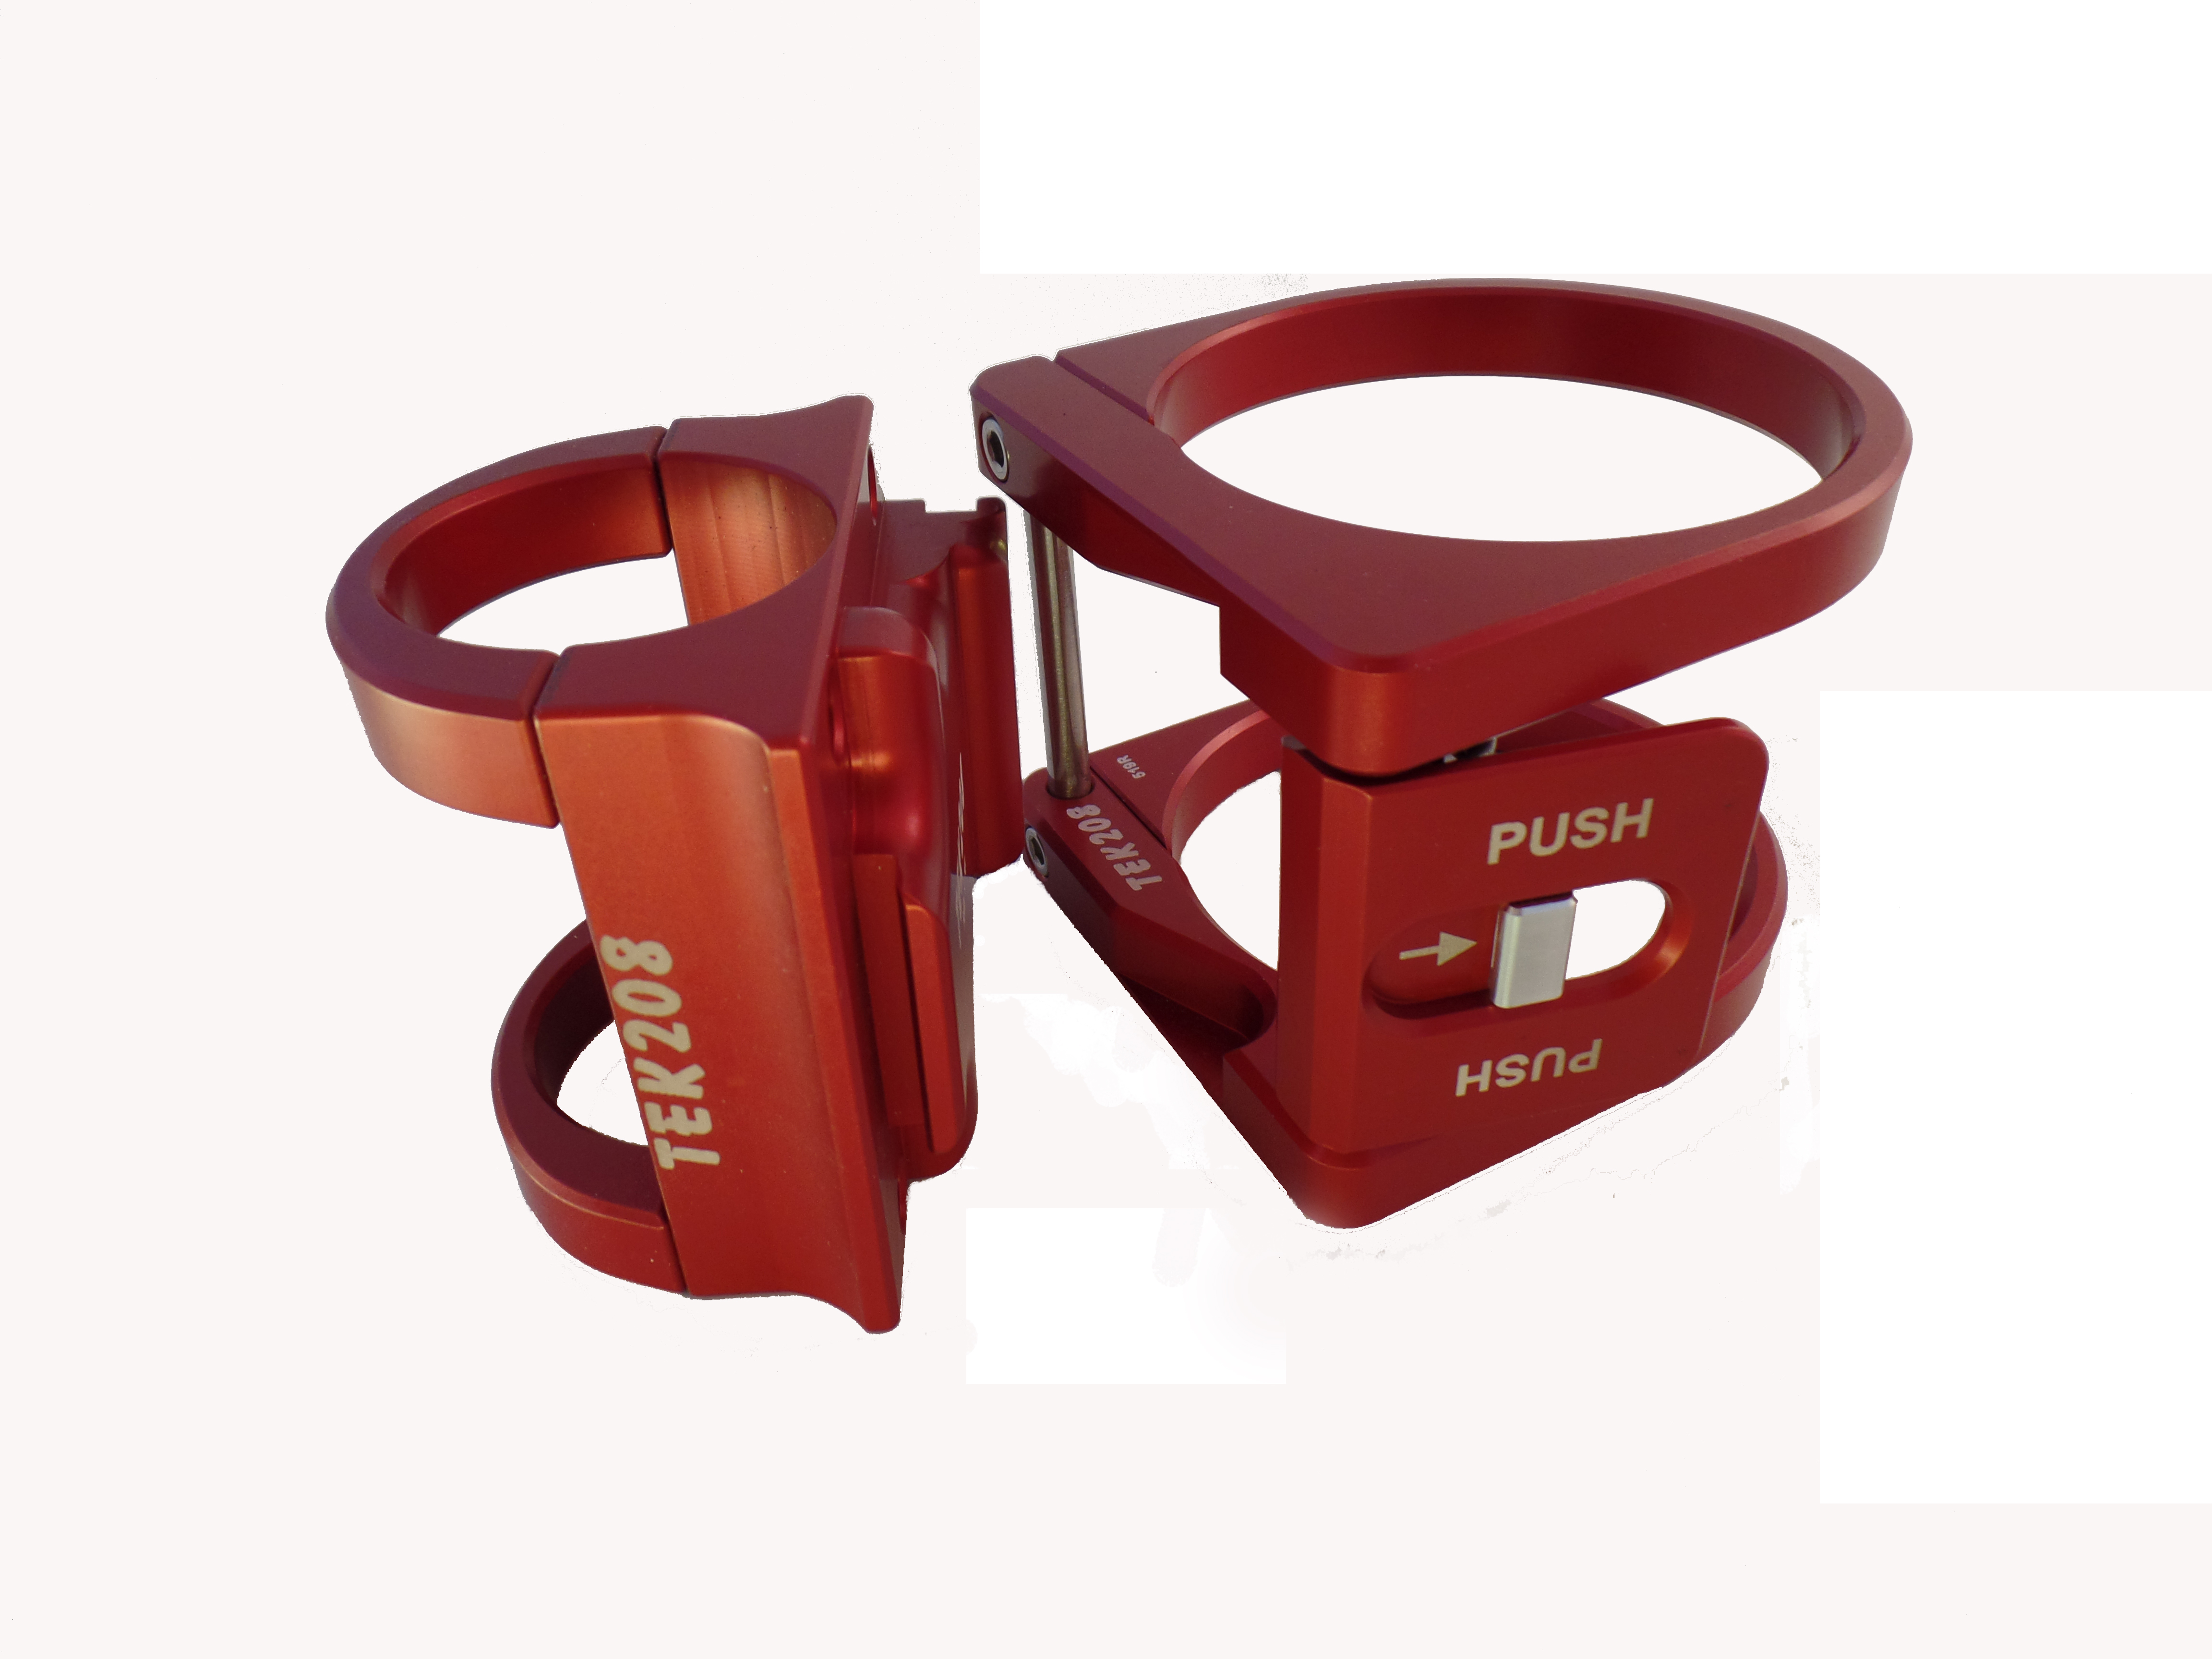 H3R Performance Introduces Extreme Duty Fire Extinguisher ... |Fire Extinguisher Roll Bar Mount